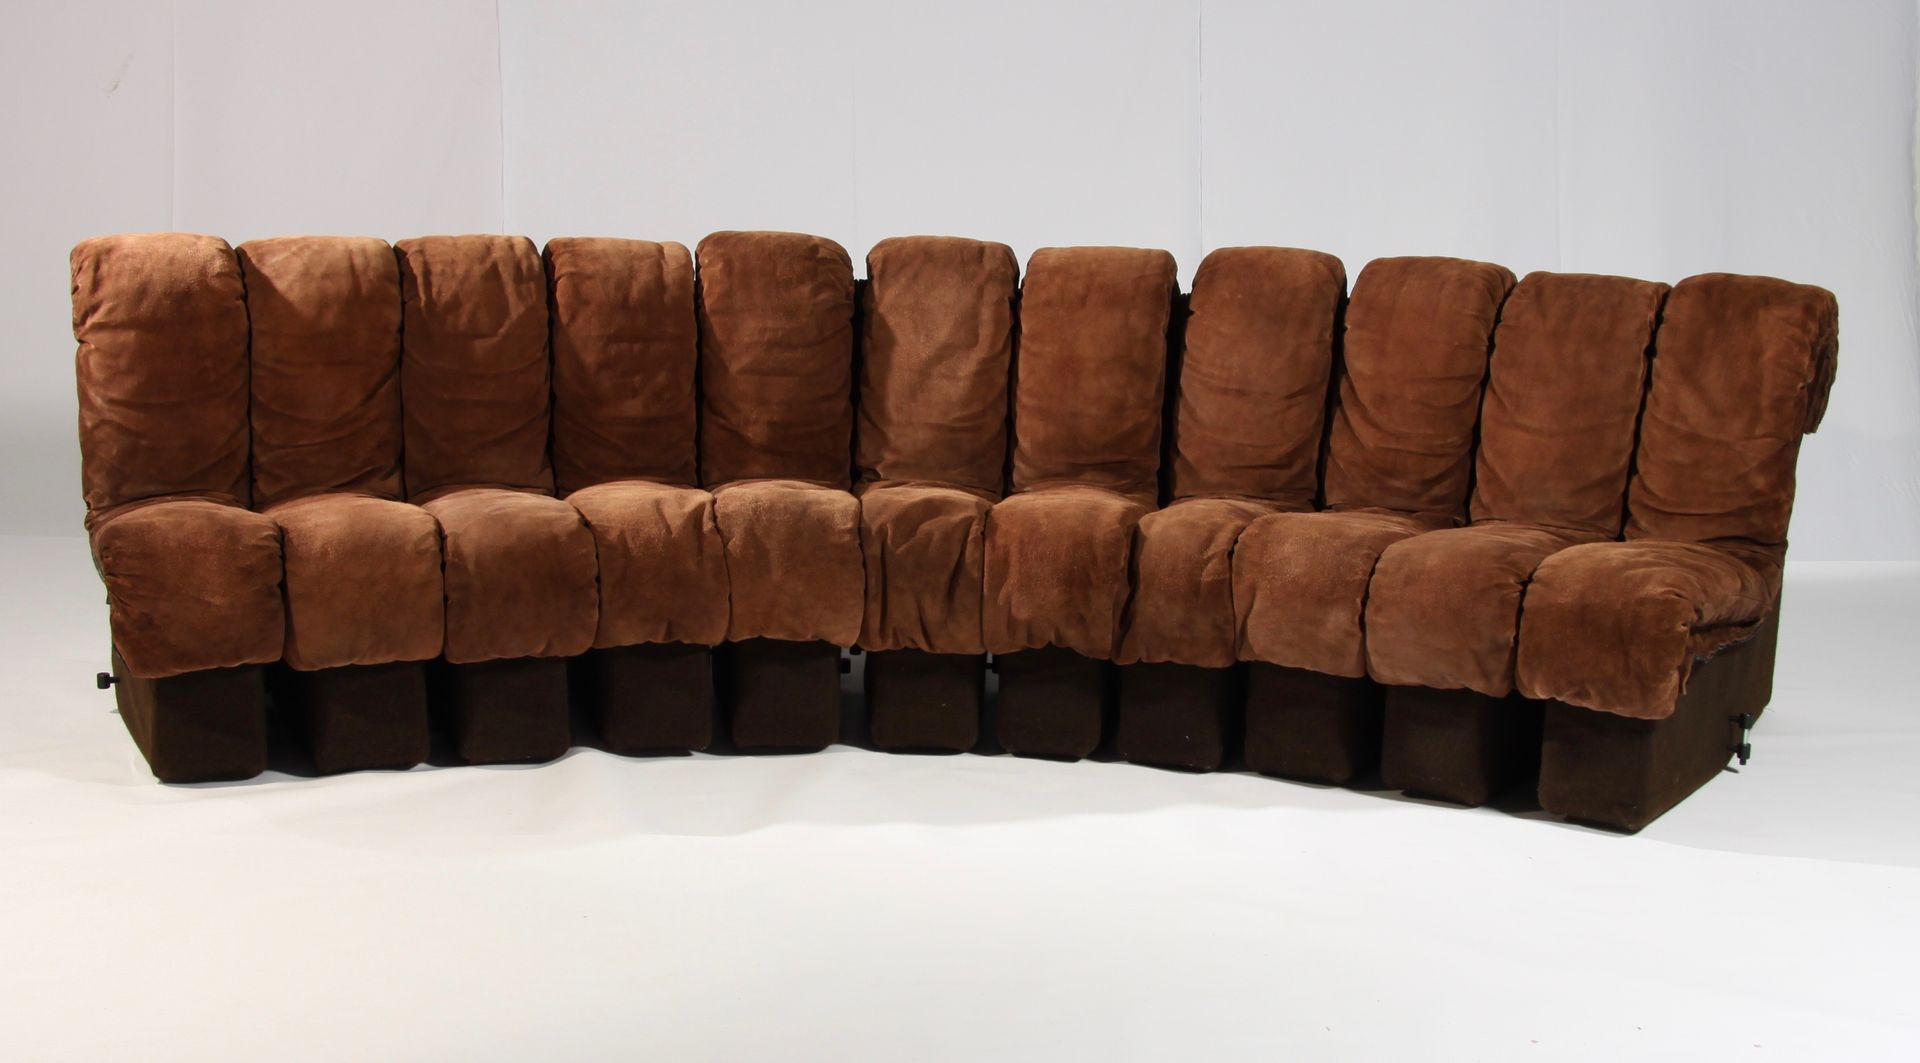 DS 600 Non Stop Modular Sofa in Brown Leather by Berger Ulrich